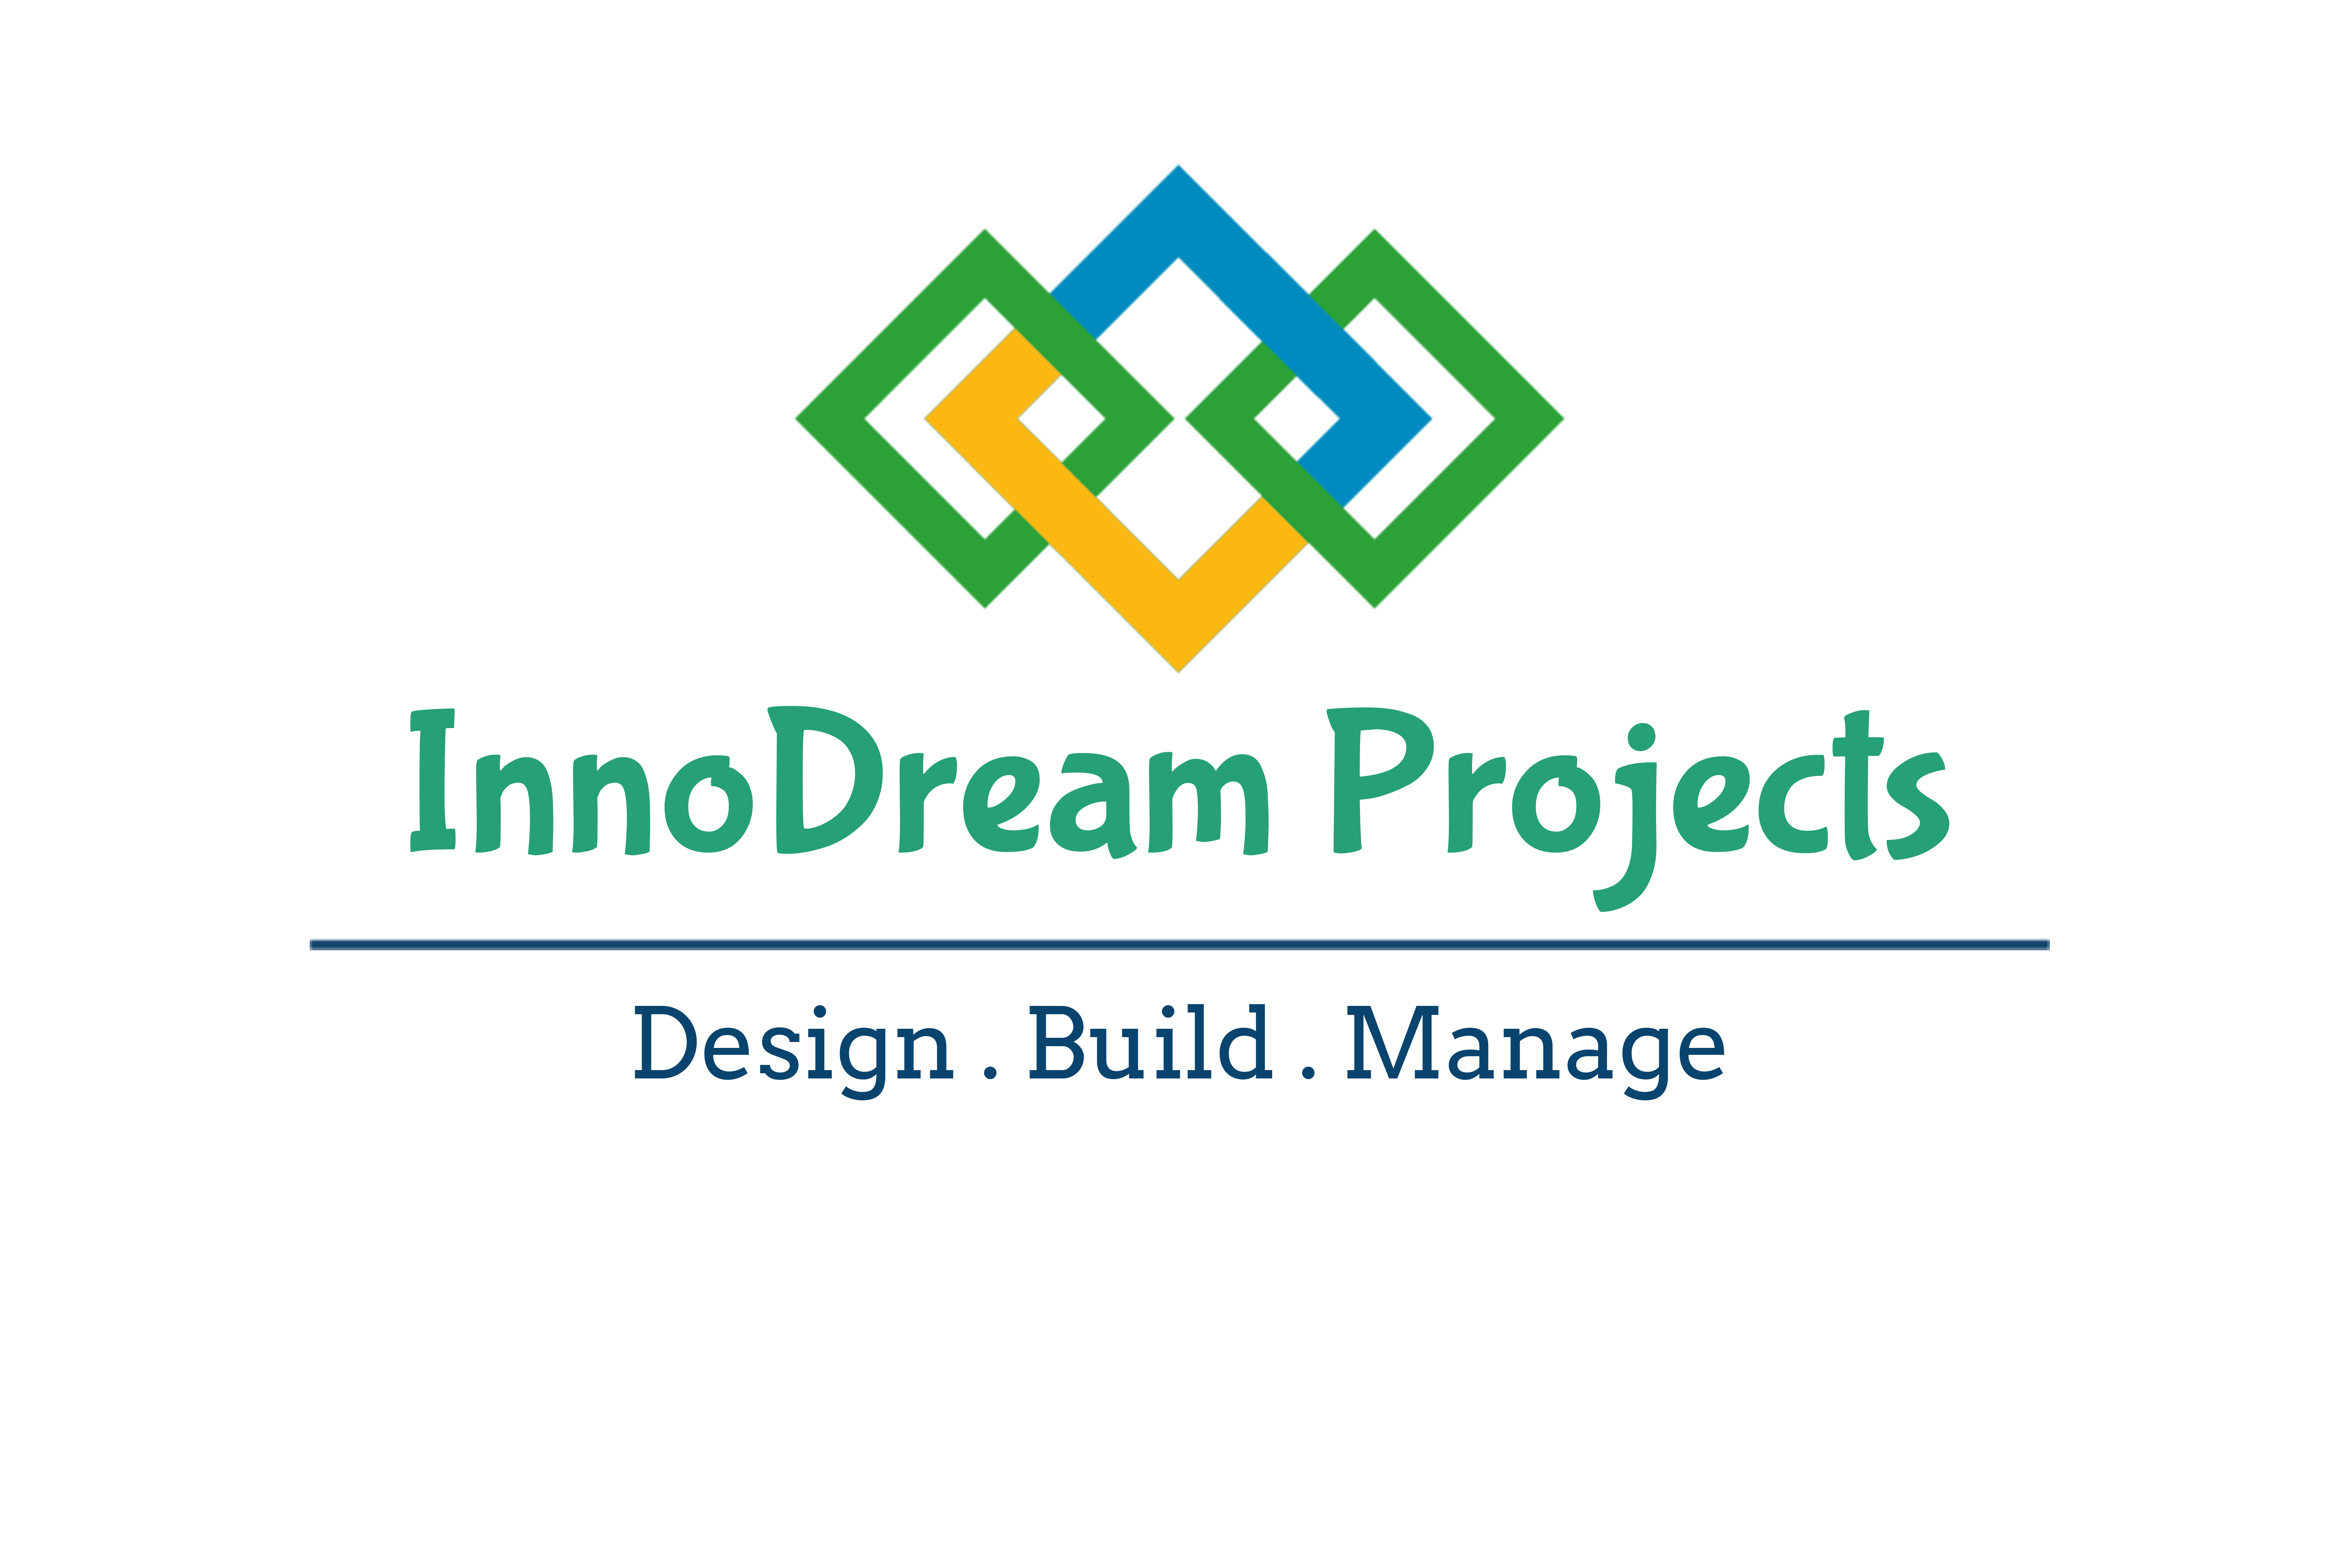 Innodream Projects